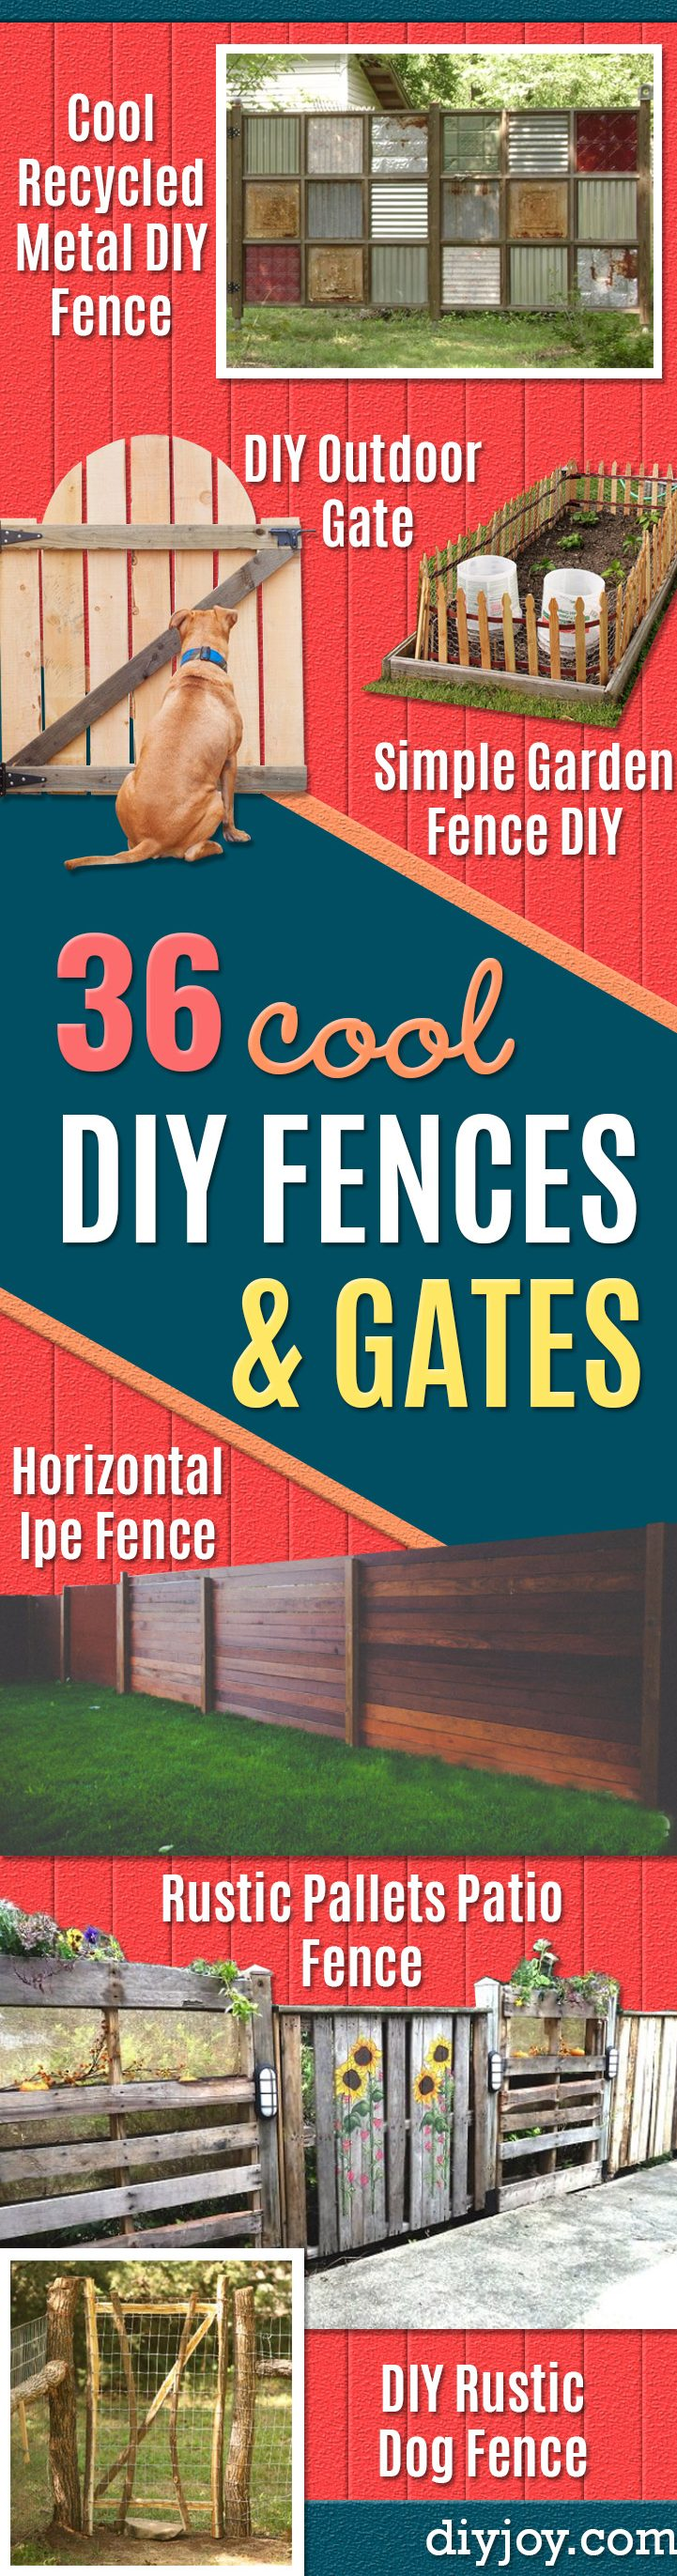 DIY Fences and Gates - How To Make Easy Fence and Gate Project for Backyard and Home - Step by Step Tutorial and Ideas for Painting, Updating and Making Fences and DIY Gate - Cool Outdoors and Yard Projects gates